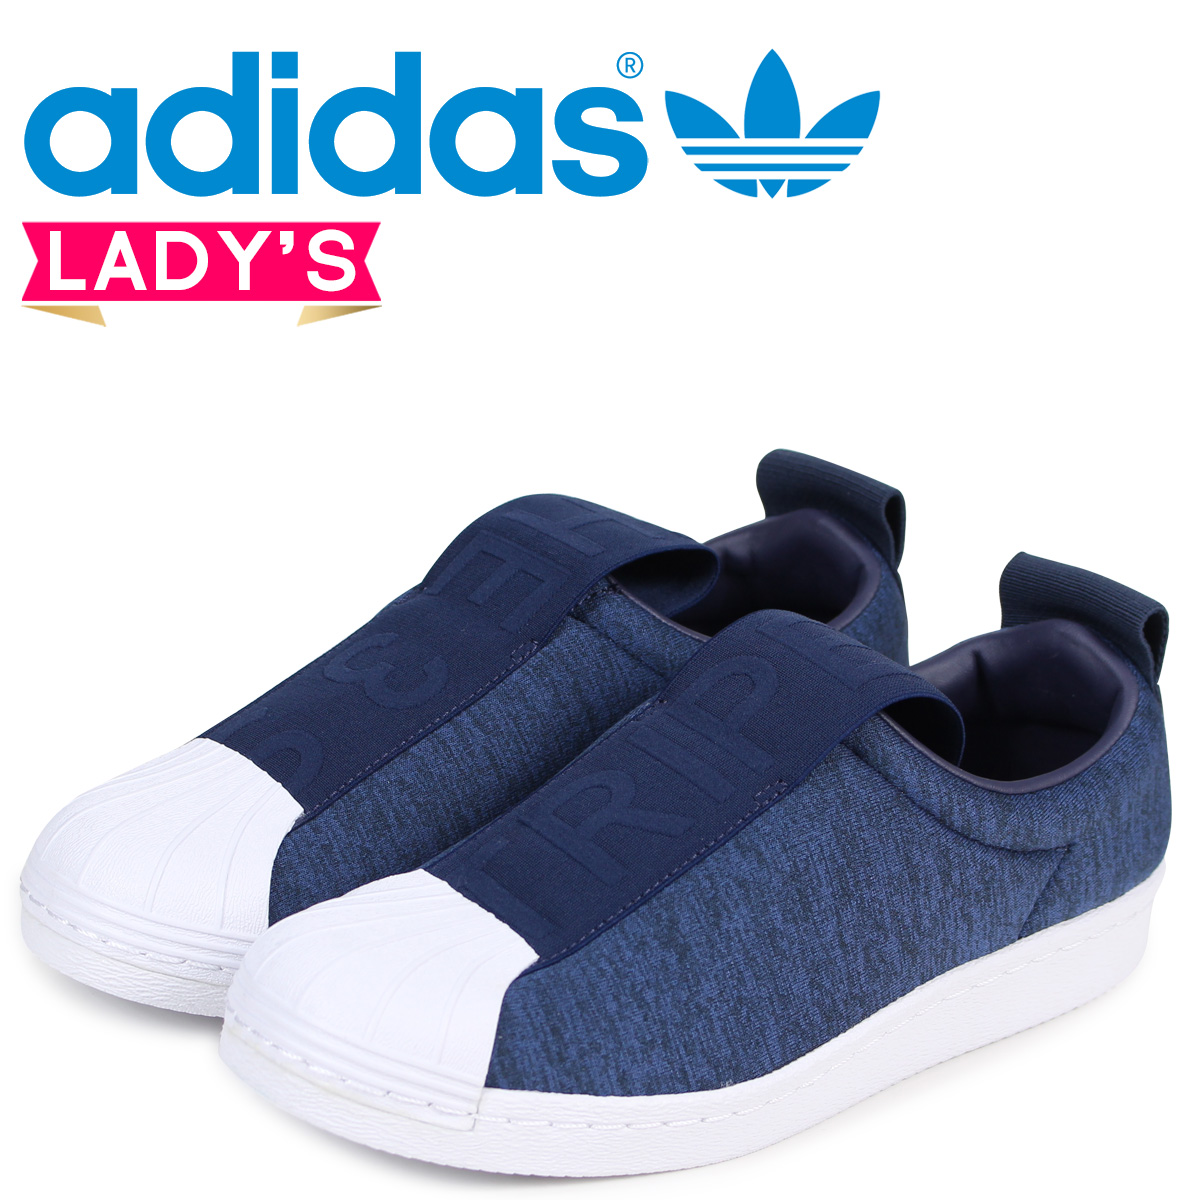 adidas superstar blue ladies